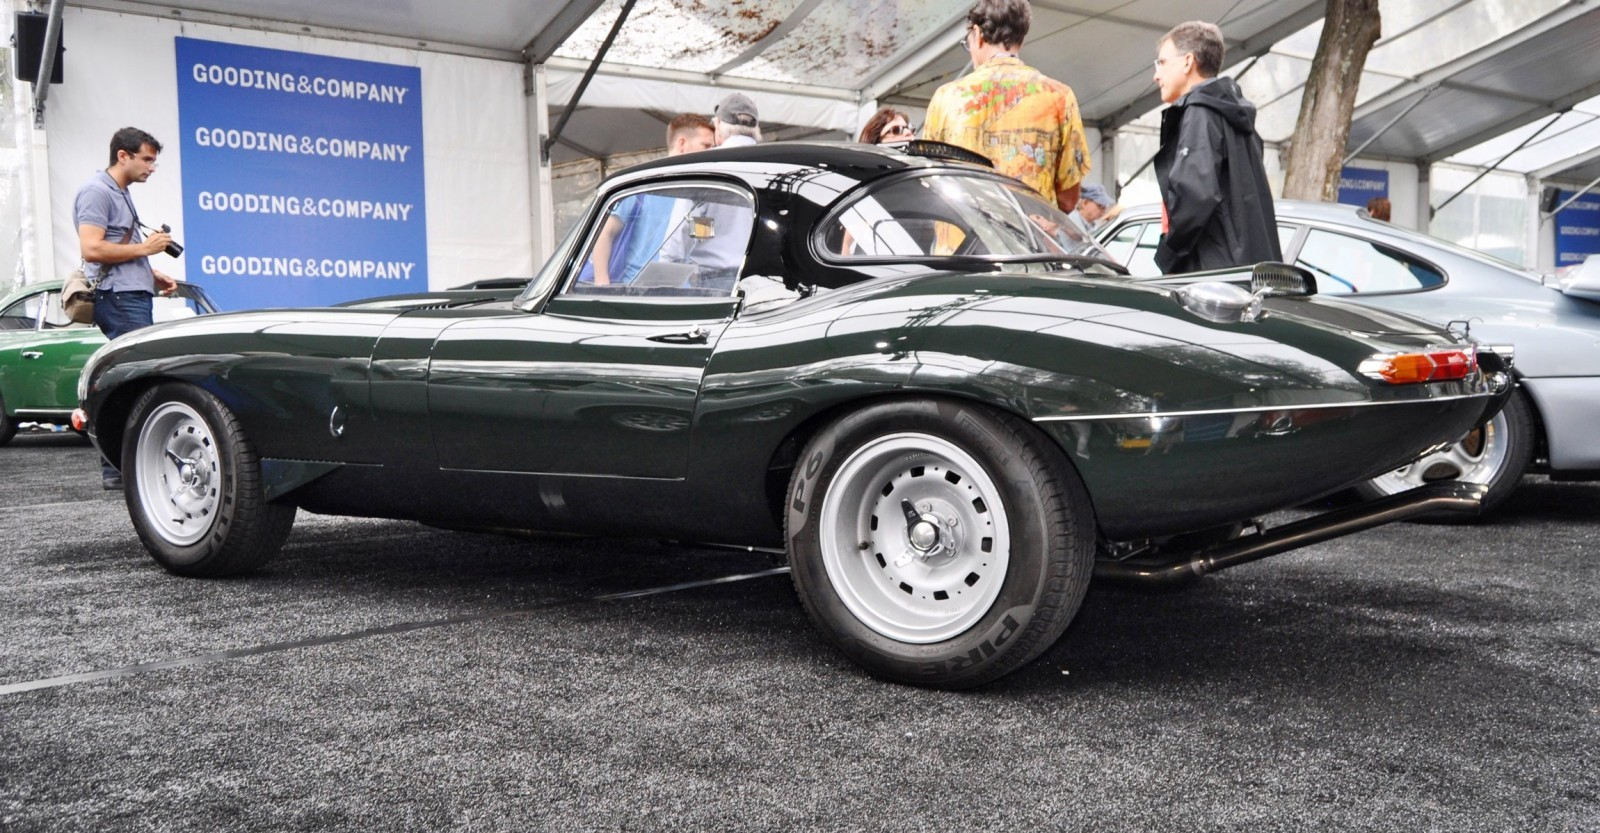 Une jaguar sachant freiner... - Page 6 1961-Jaguar-E-Type-Series-I-Lightweight-Replica-7-1600x833